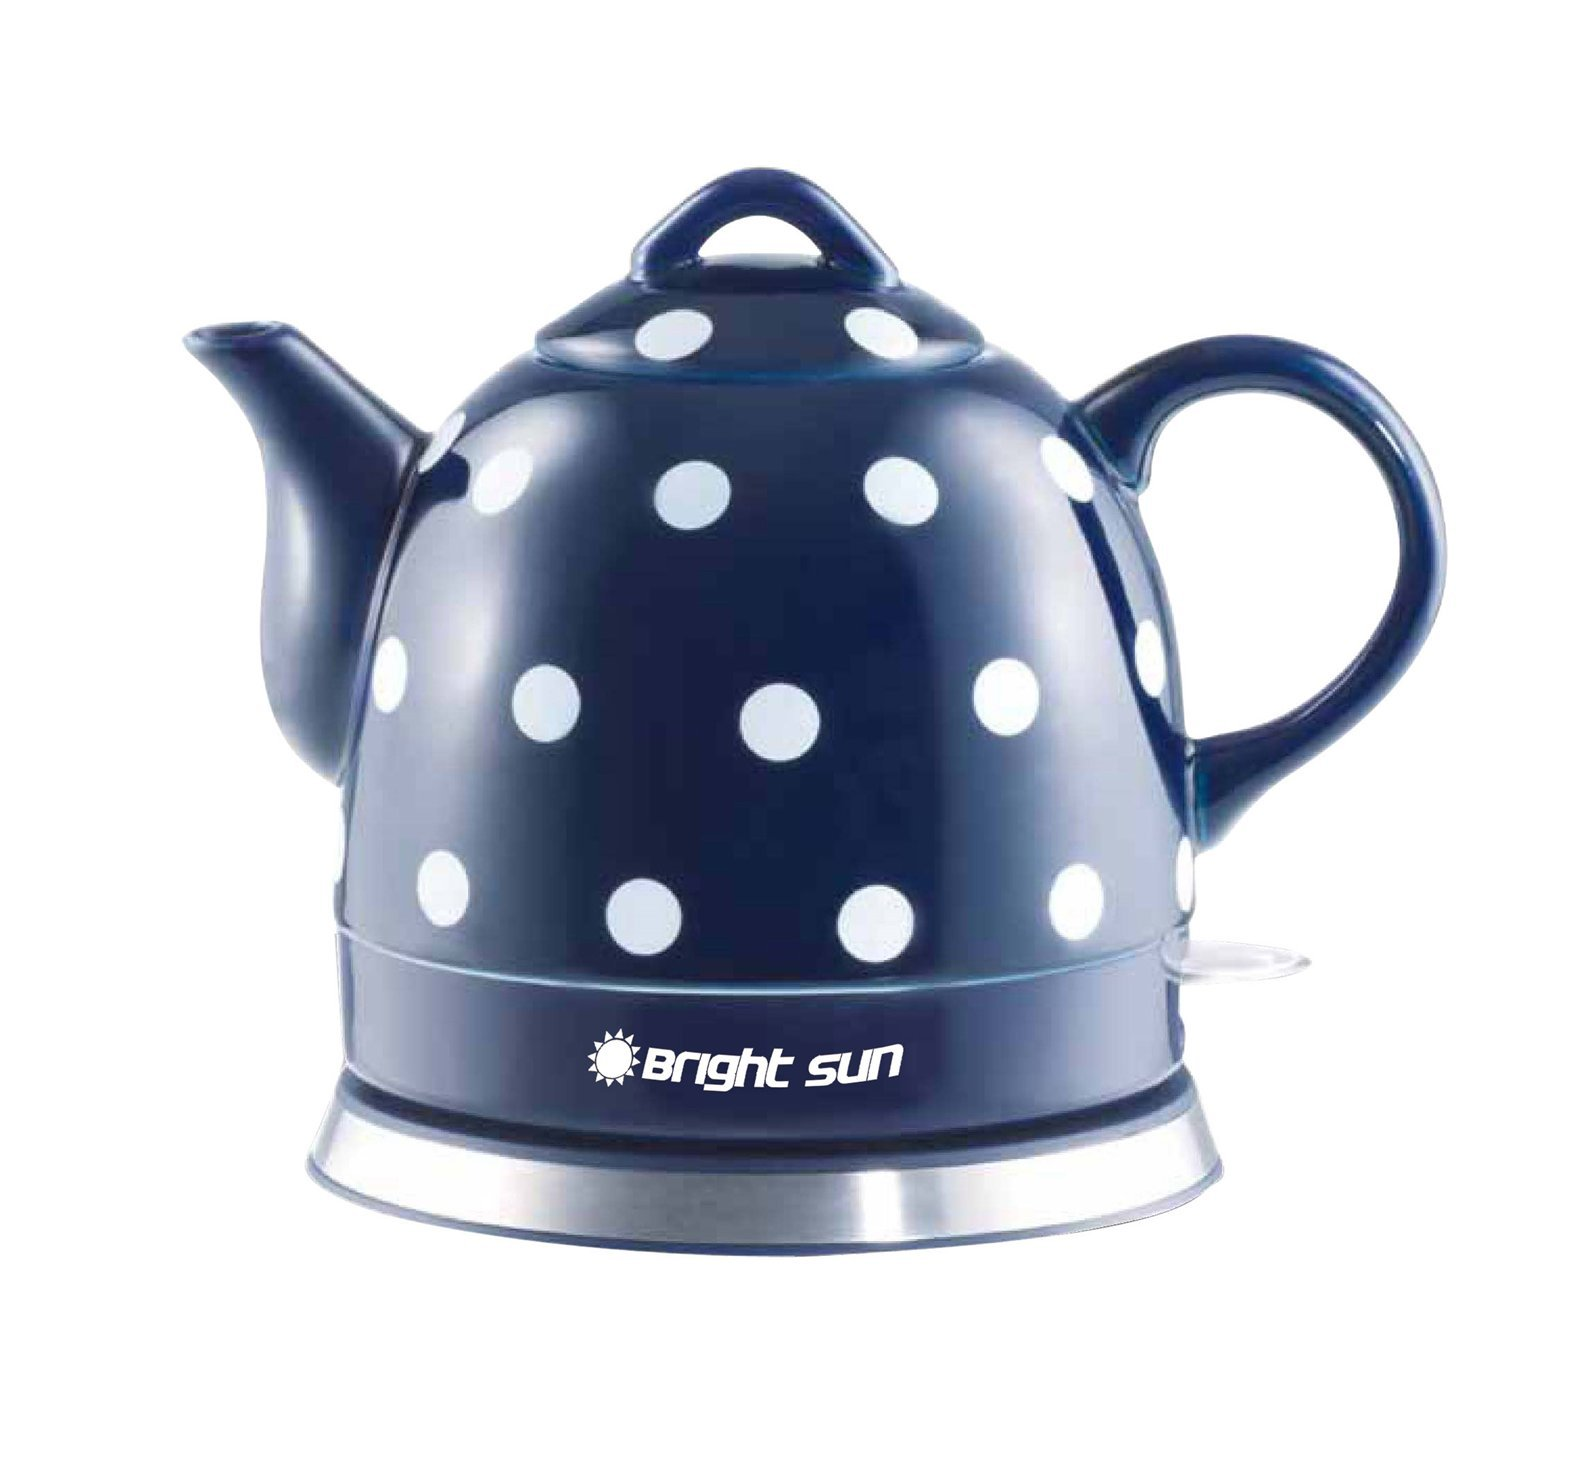 FixtureDisplays Ceramic Electric Kettle with Polka Dots Blue White 13582 13582!